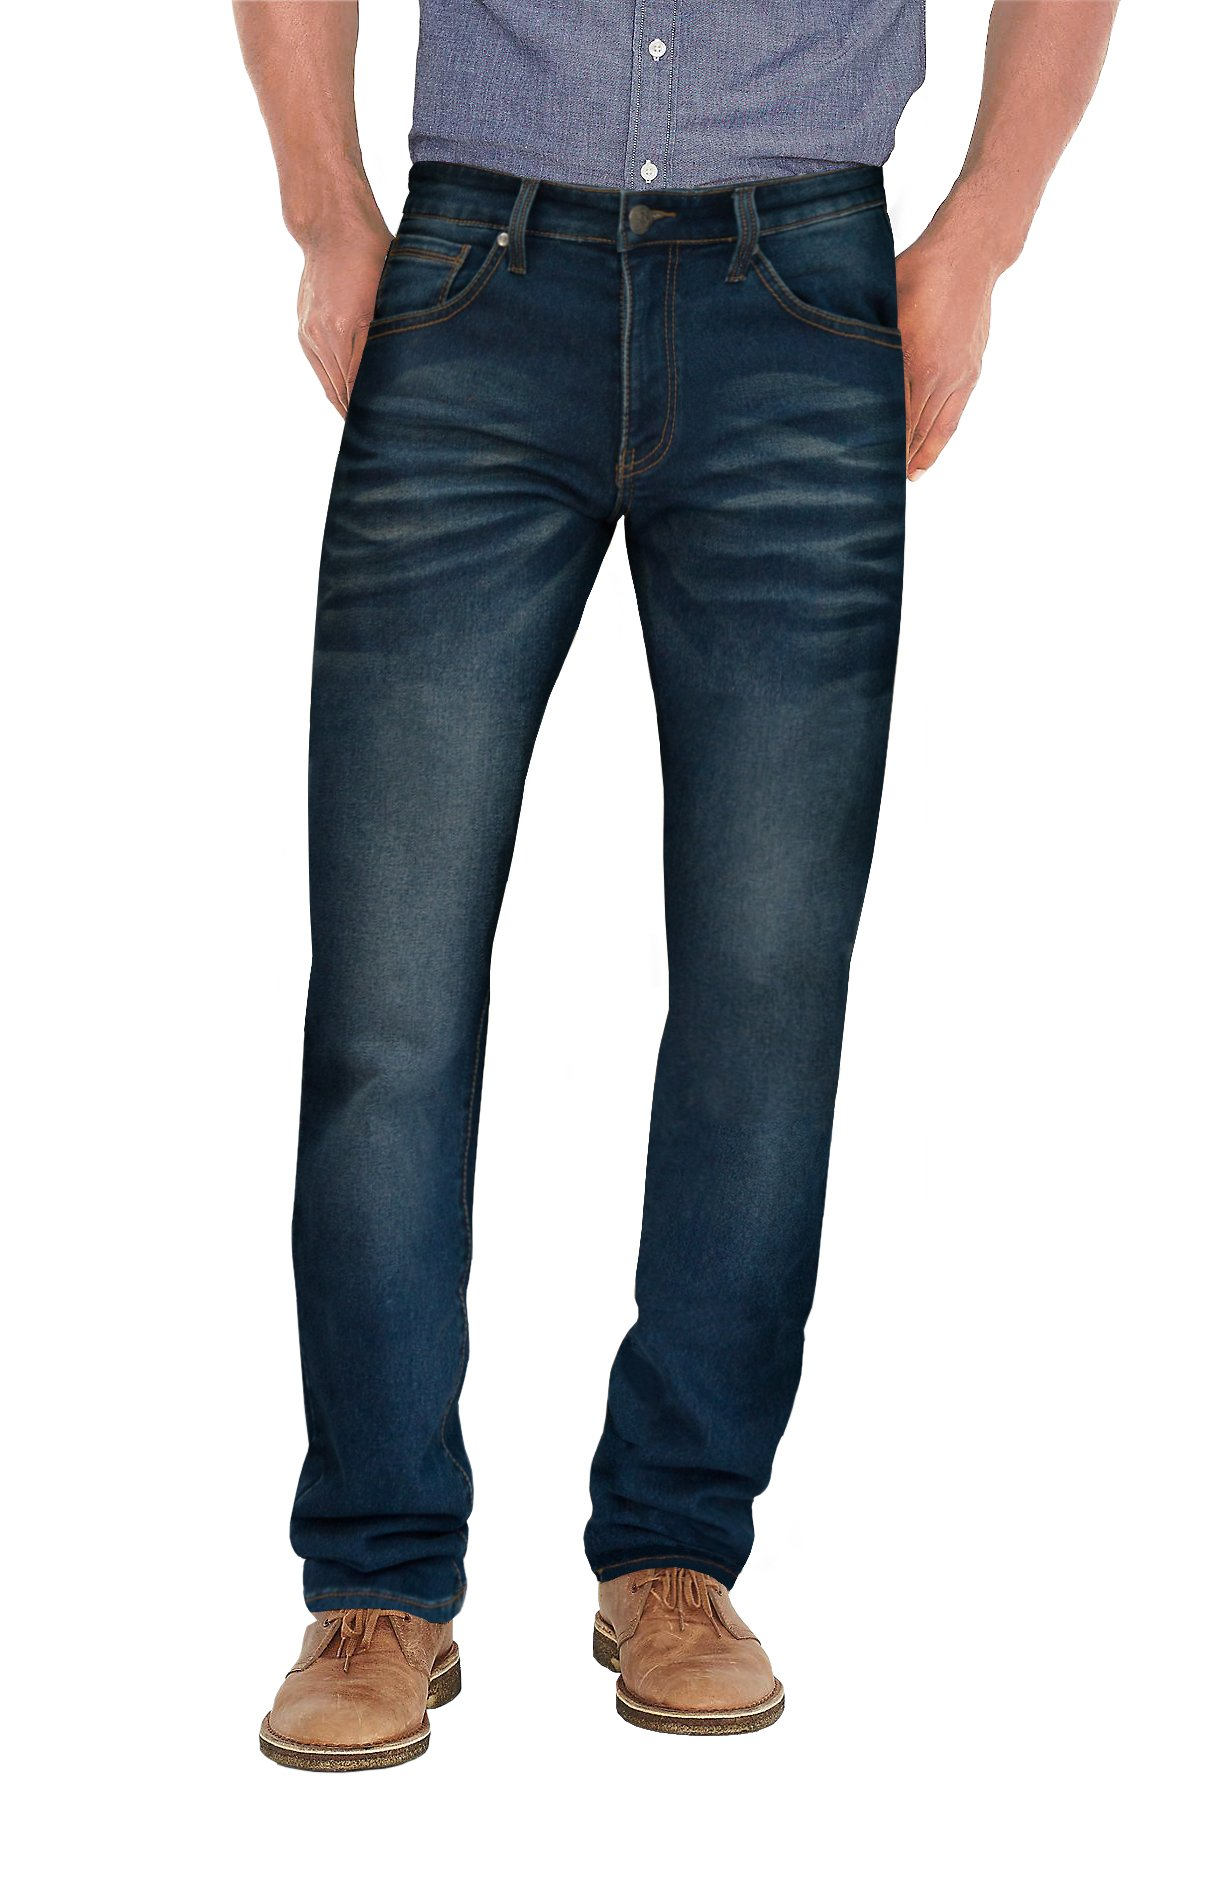 Agile Mens Super Comfy Straight Stretch Denim Jean AKP44101SL Medium BLU 32X30